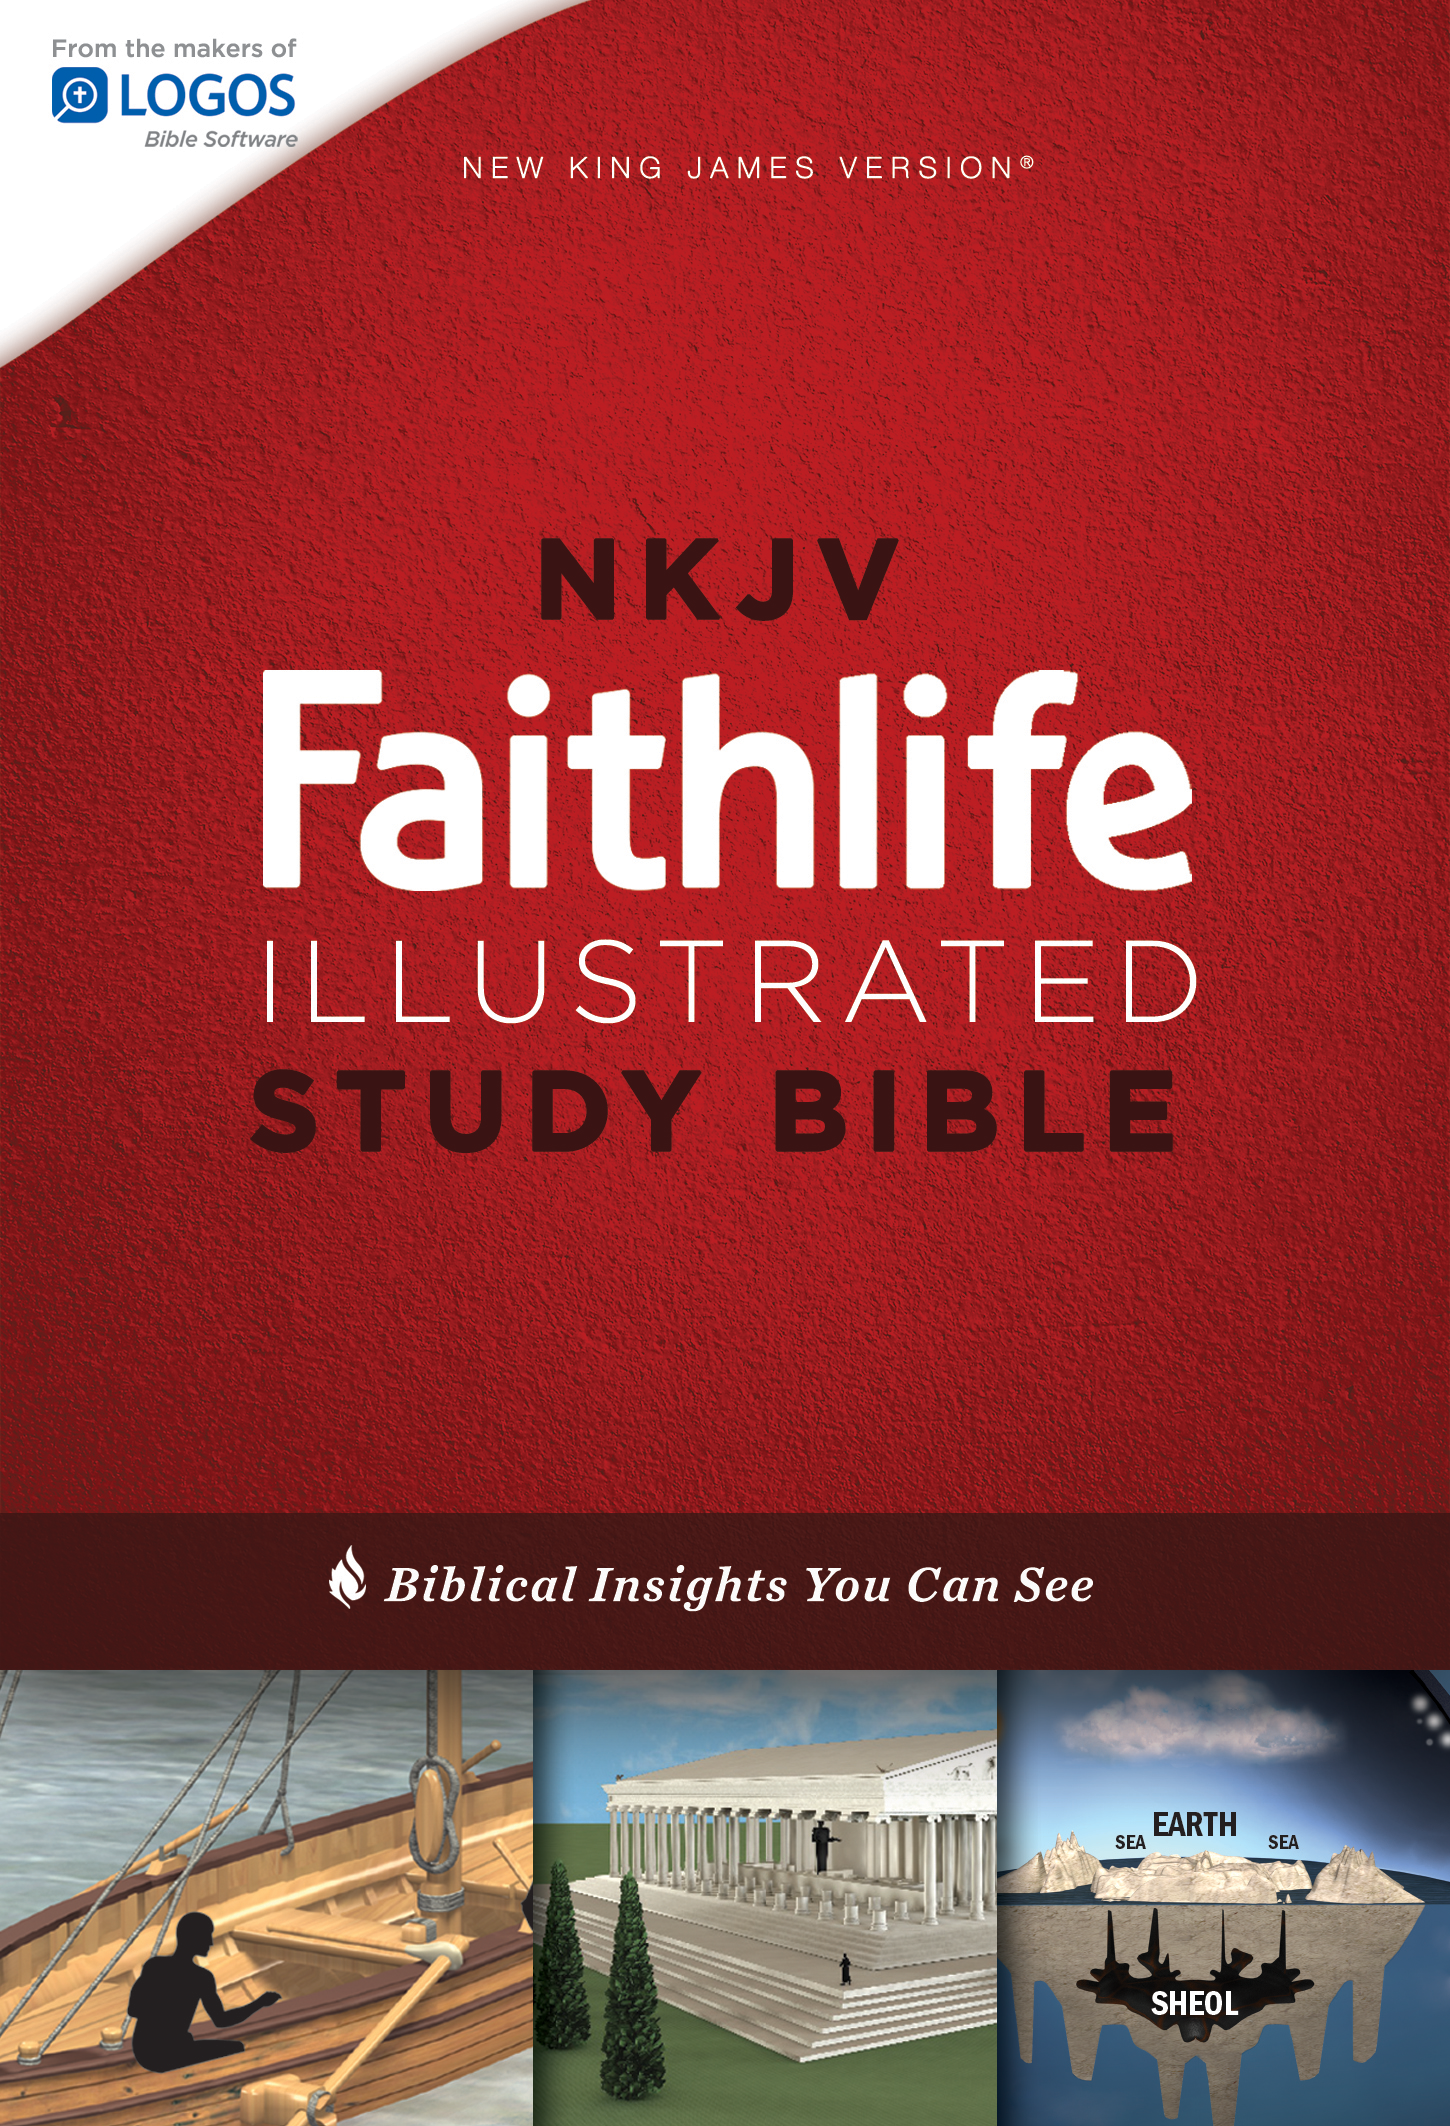 NKJV Faithlife Illustrated Study Bible